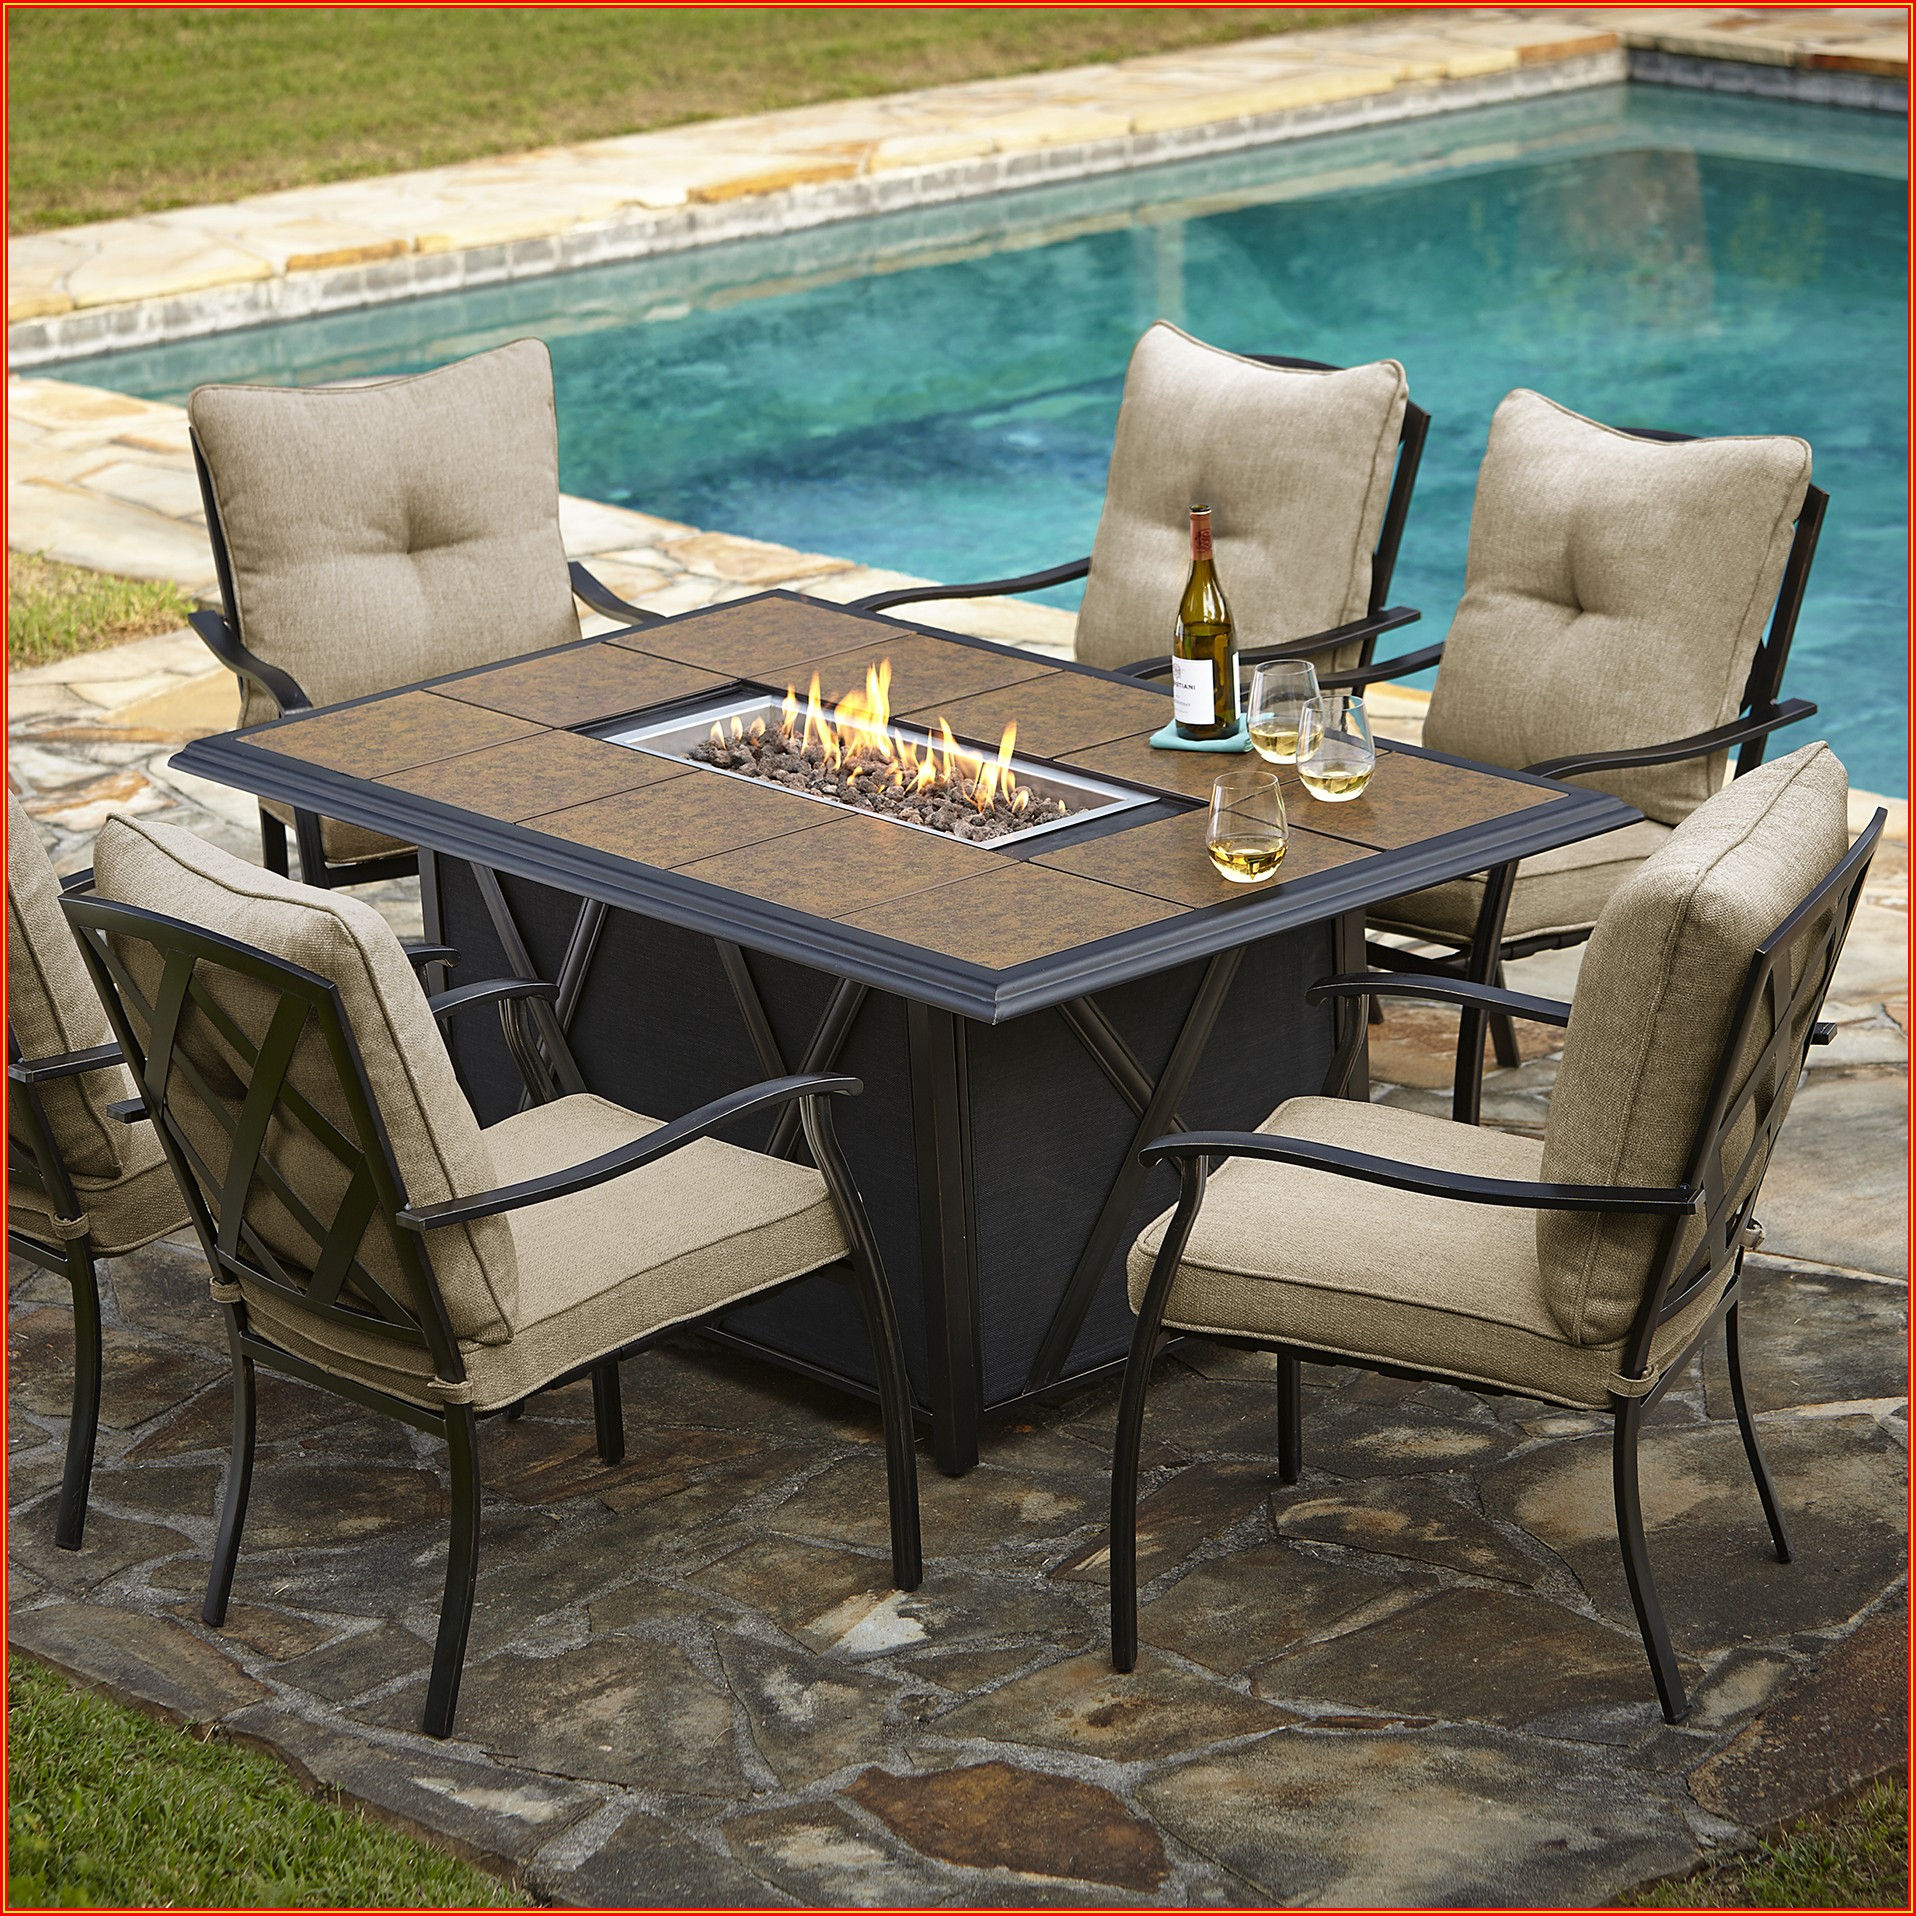 Patio Dining Set With Fire Table